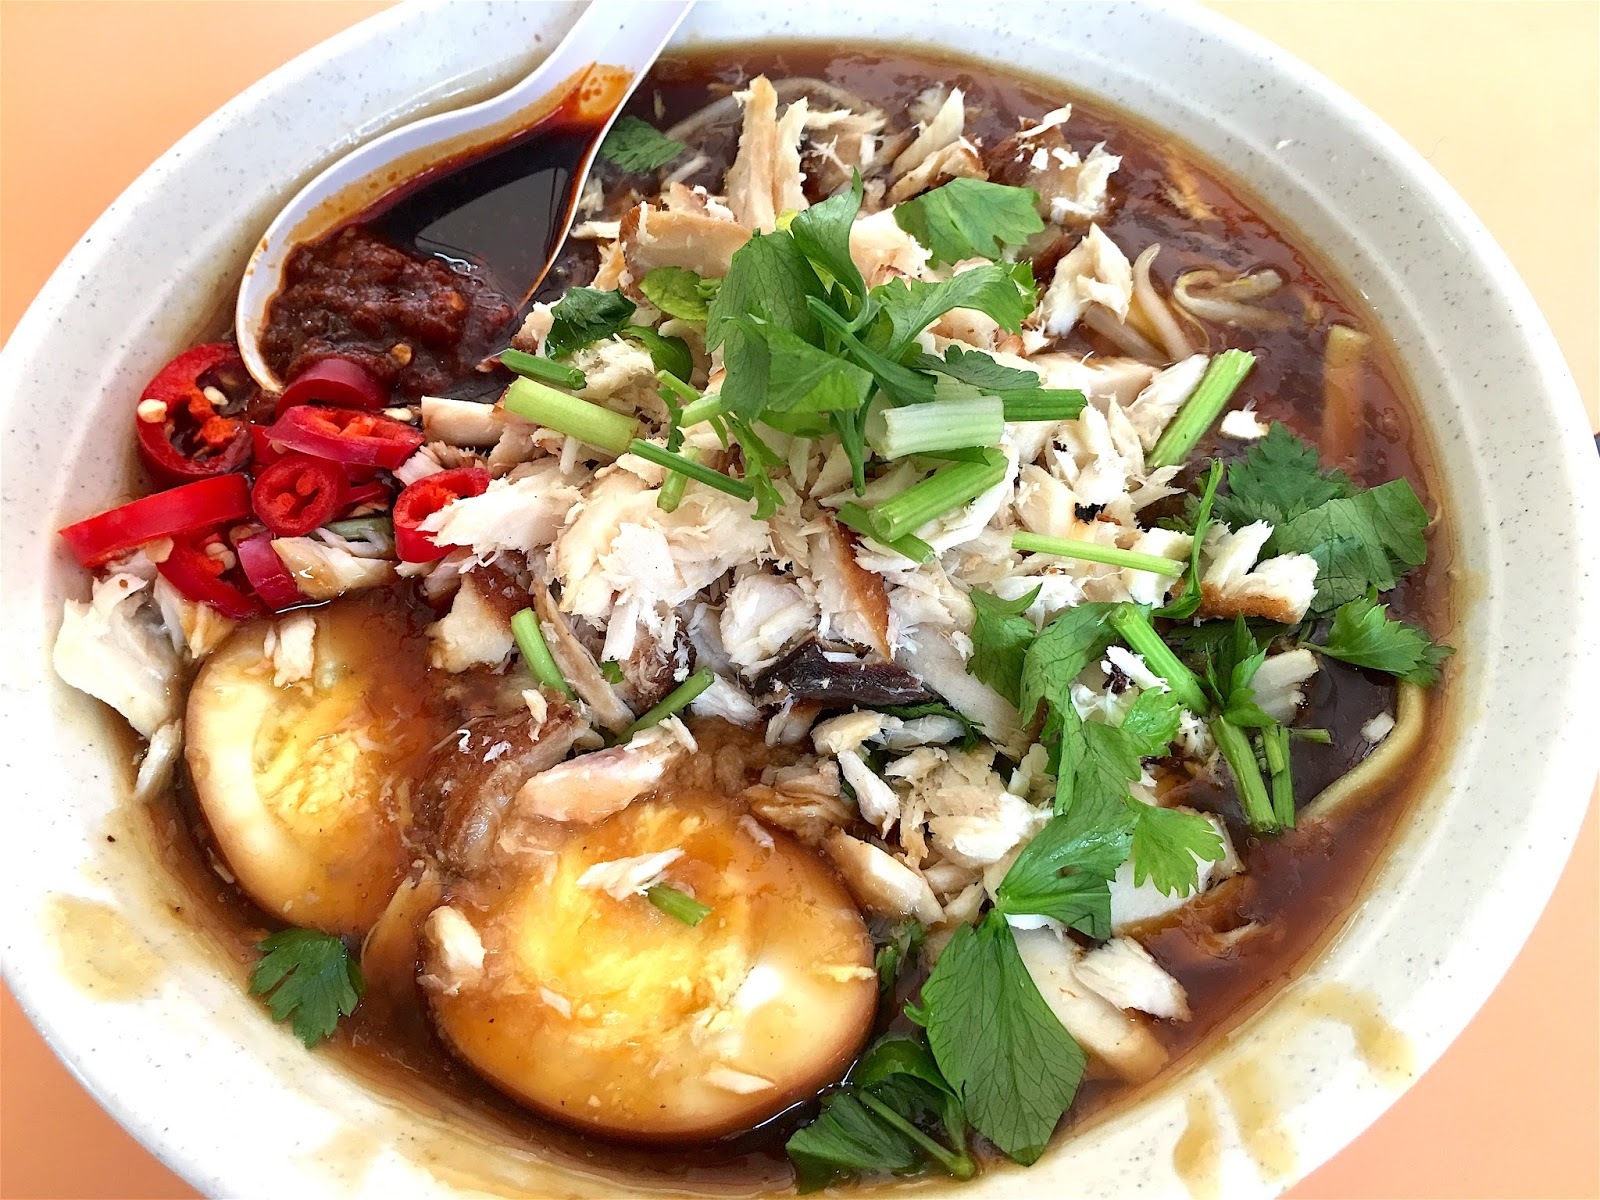 Xin Mei Xiang Lor Mee 新美香卤面 at Old Airport Road Hawker Centre ...